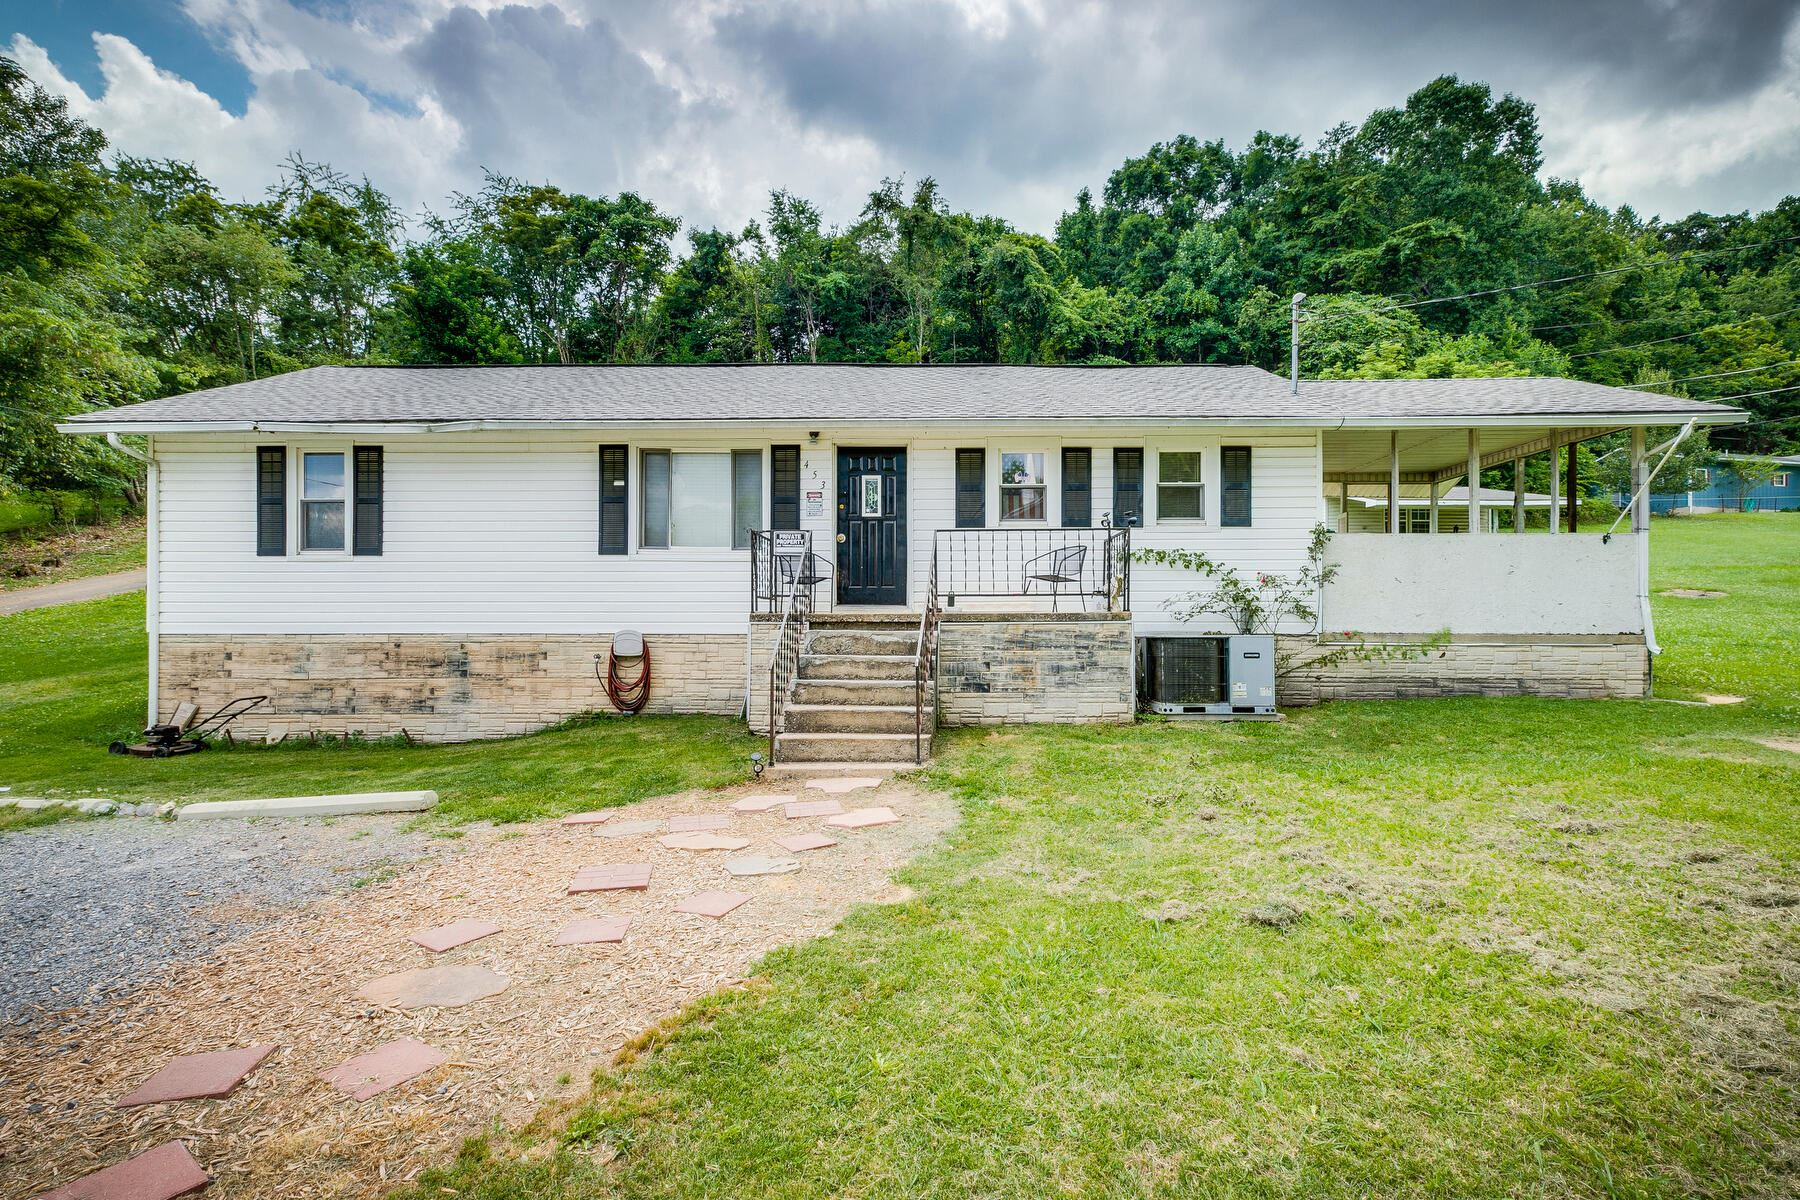 Photo of 453 Independence Drive, Kingsport, TN 37660 (MLS # 9924475)